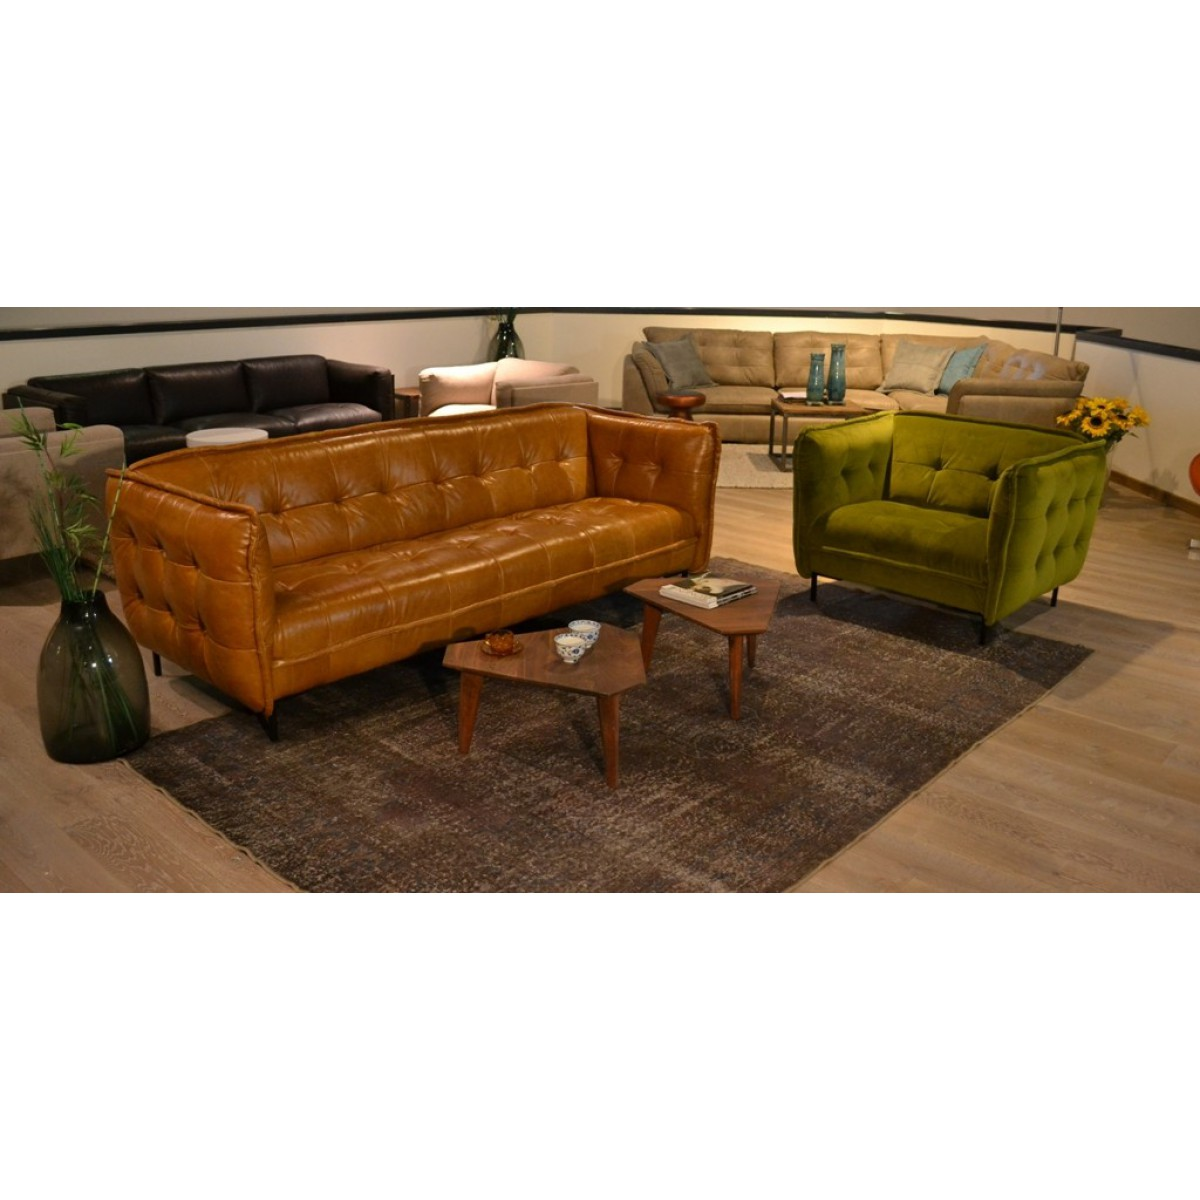 bank_slimm_jim_patch_work_leder_leer_da_silva_tabacco_cognac_tom_club_easy_sofa_sfeer